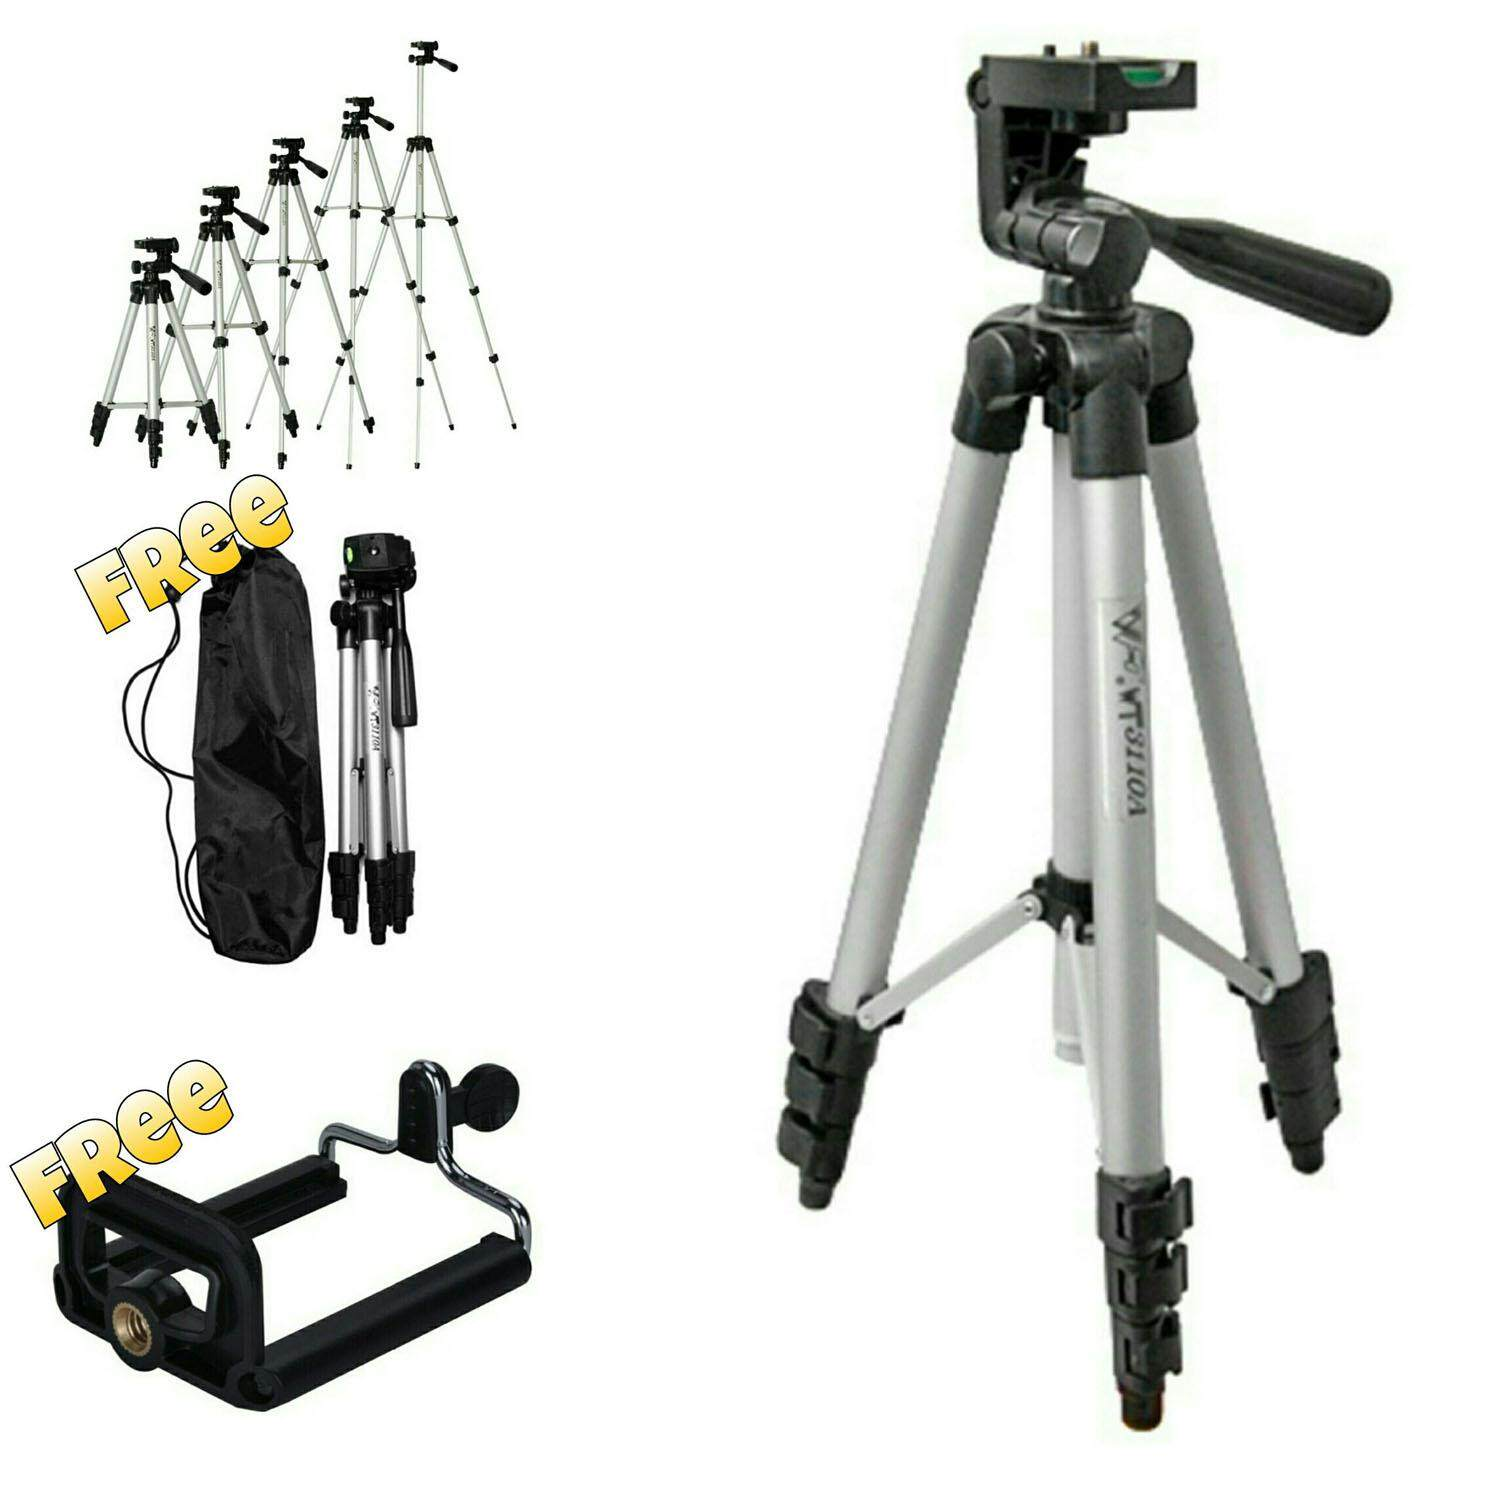 Tripods For The Best Price In Malaysia Excell Hero 200 Light Stand Ready Stock Tgadget Weifeng Wt 3110a Compact Lightweight Aluminum Flexible Tripod Free Mobile